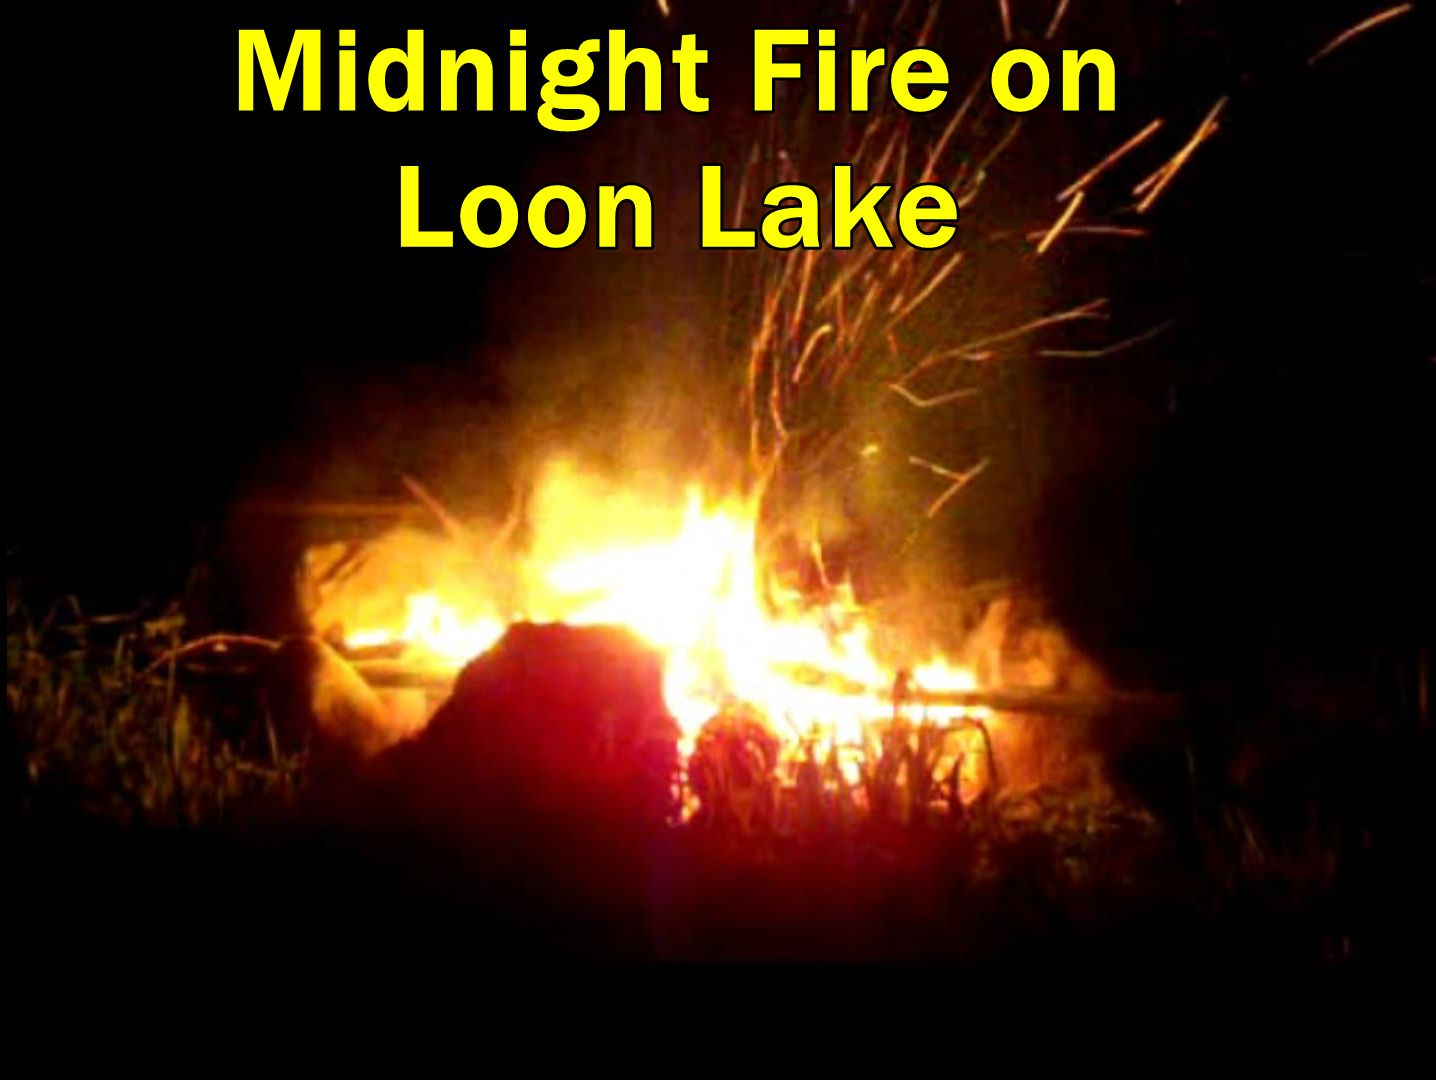 Midnight Fire on Loon Lake